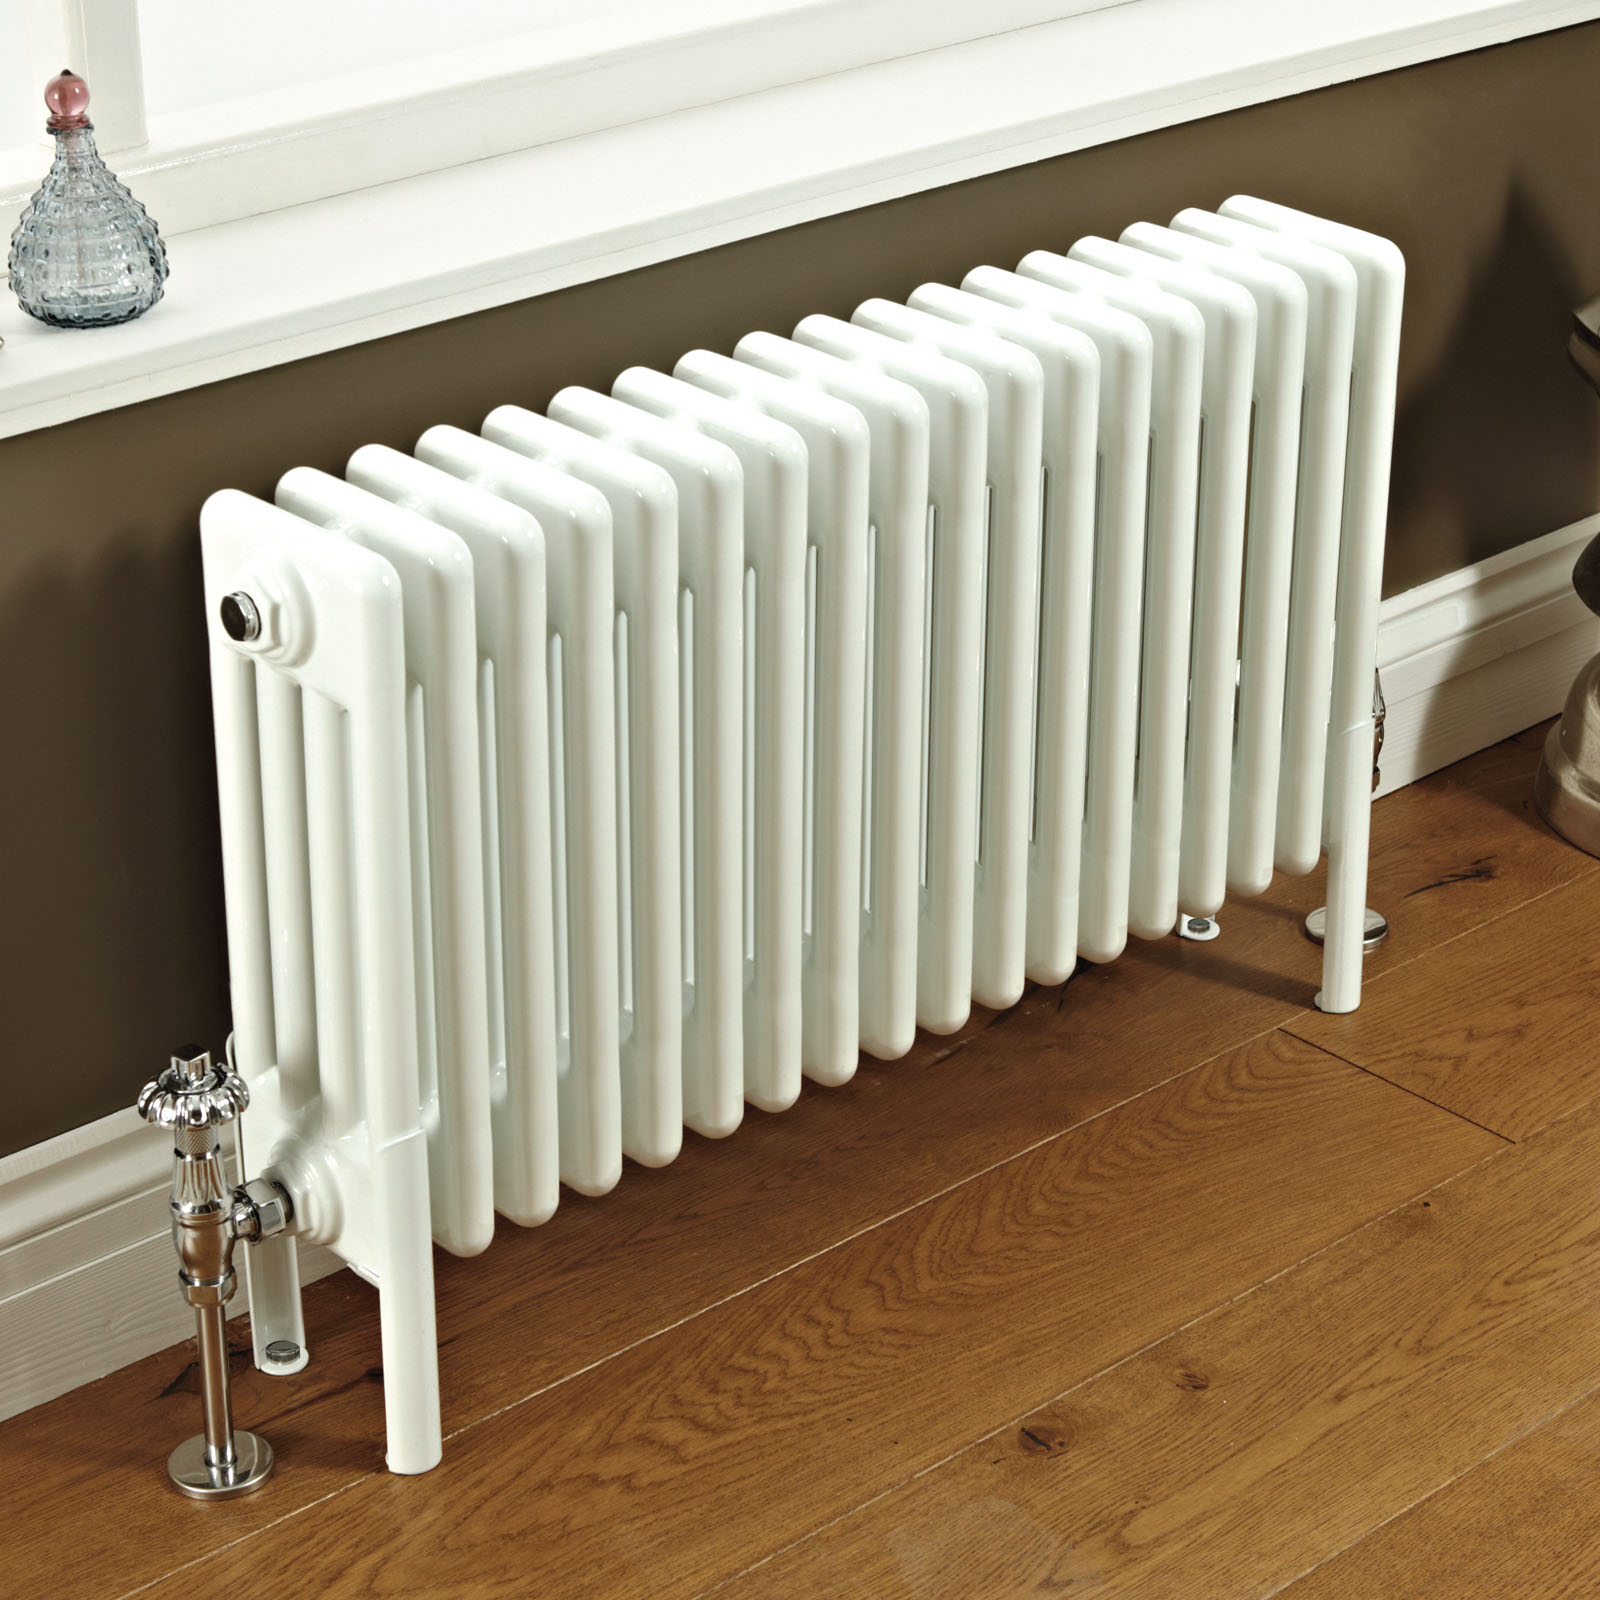 How To Check And Fix Your Leaking Radiator Justboilers Com